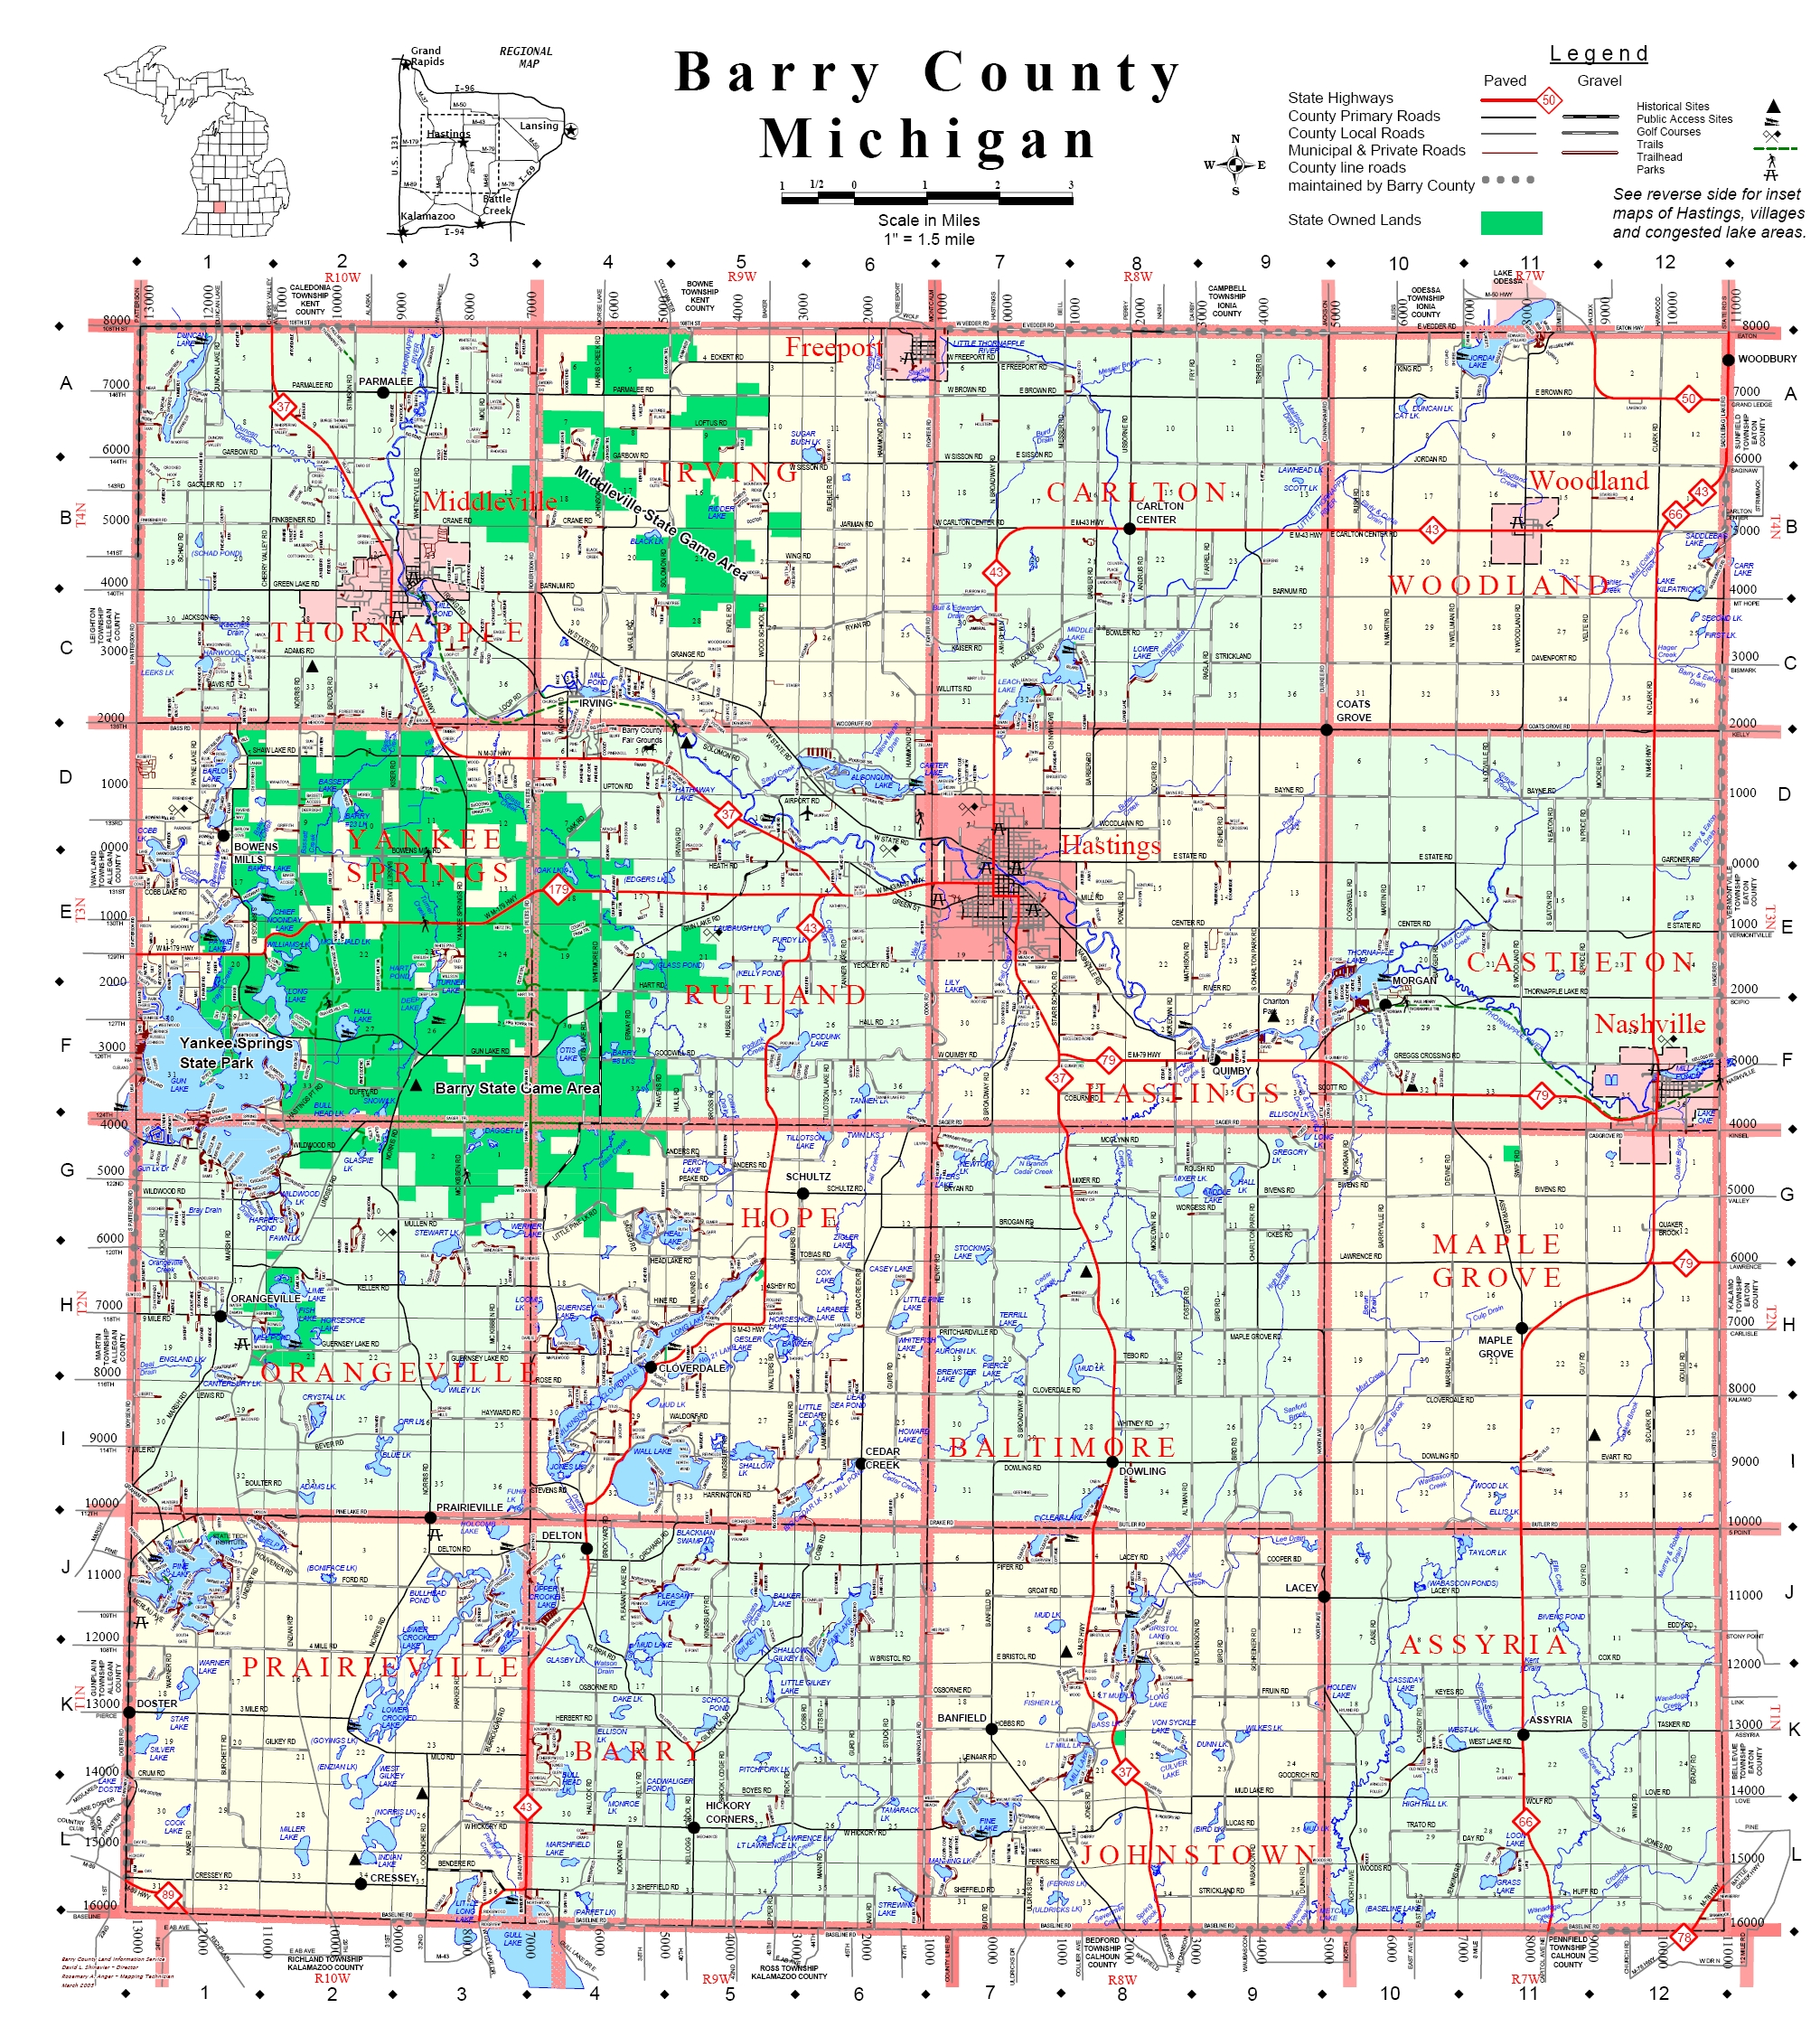 Barry County Map Barry County Road Commission - County map of michigan with cities